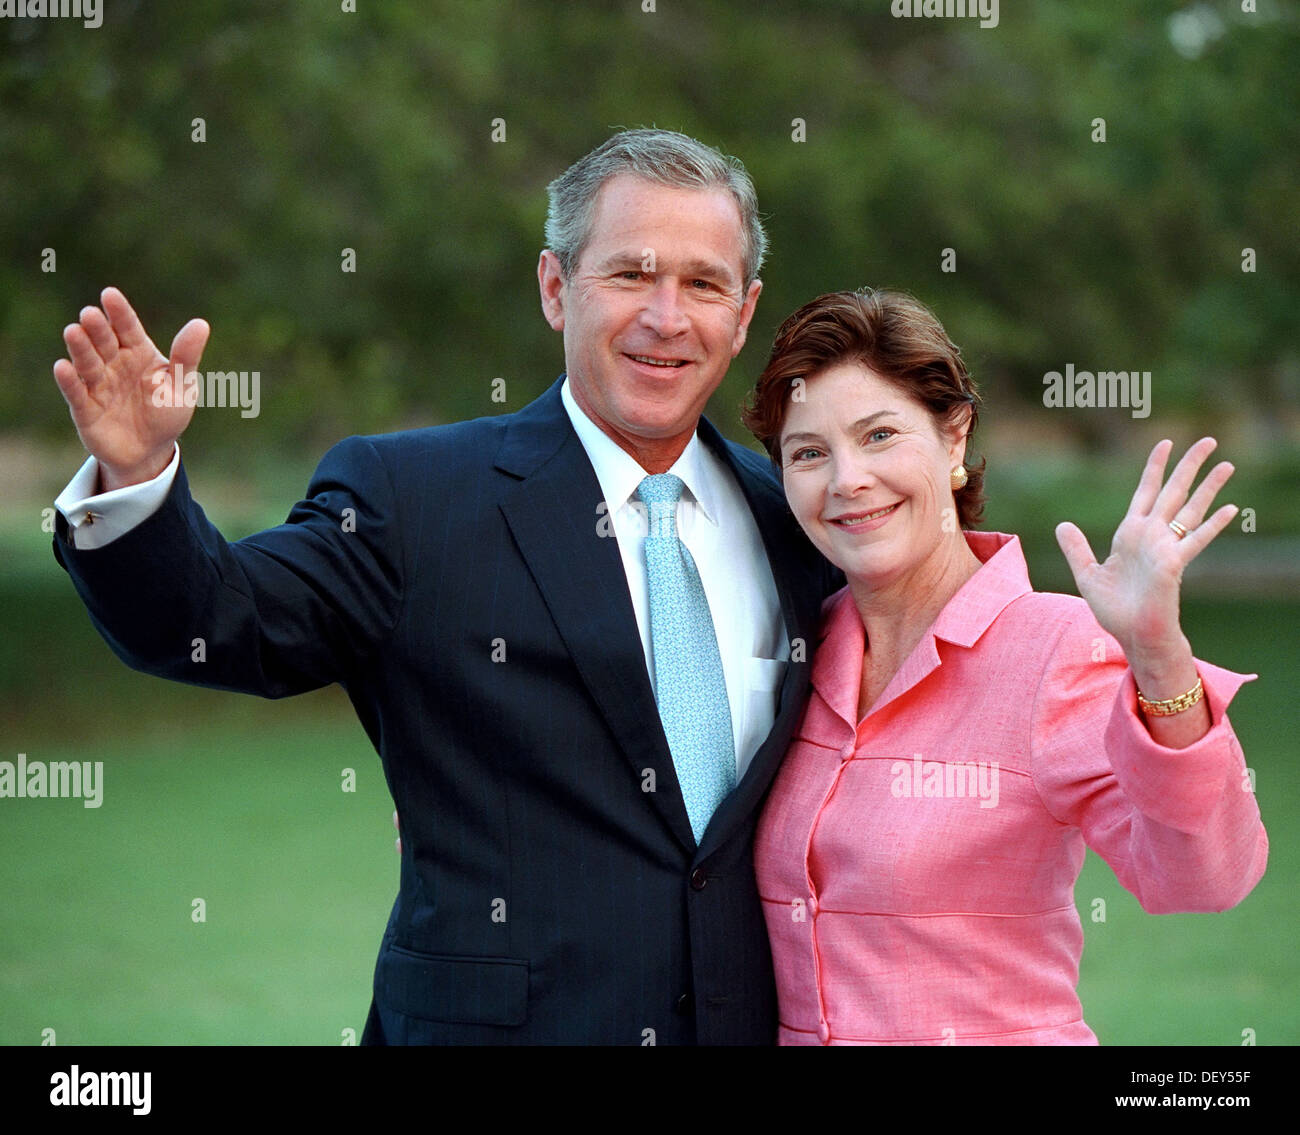 US President George W. Bush and First Lady Laura Bush in their official portrait at the White House June 20, 2004 Stock Photo